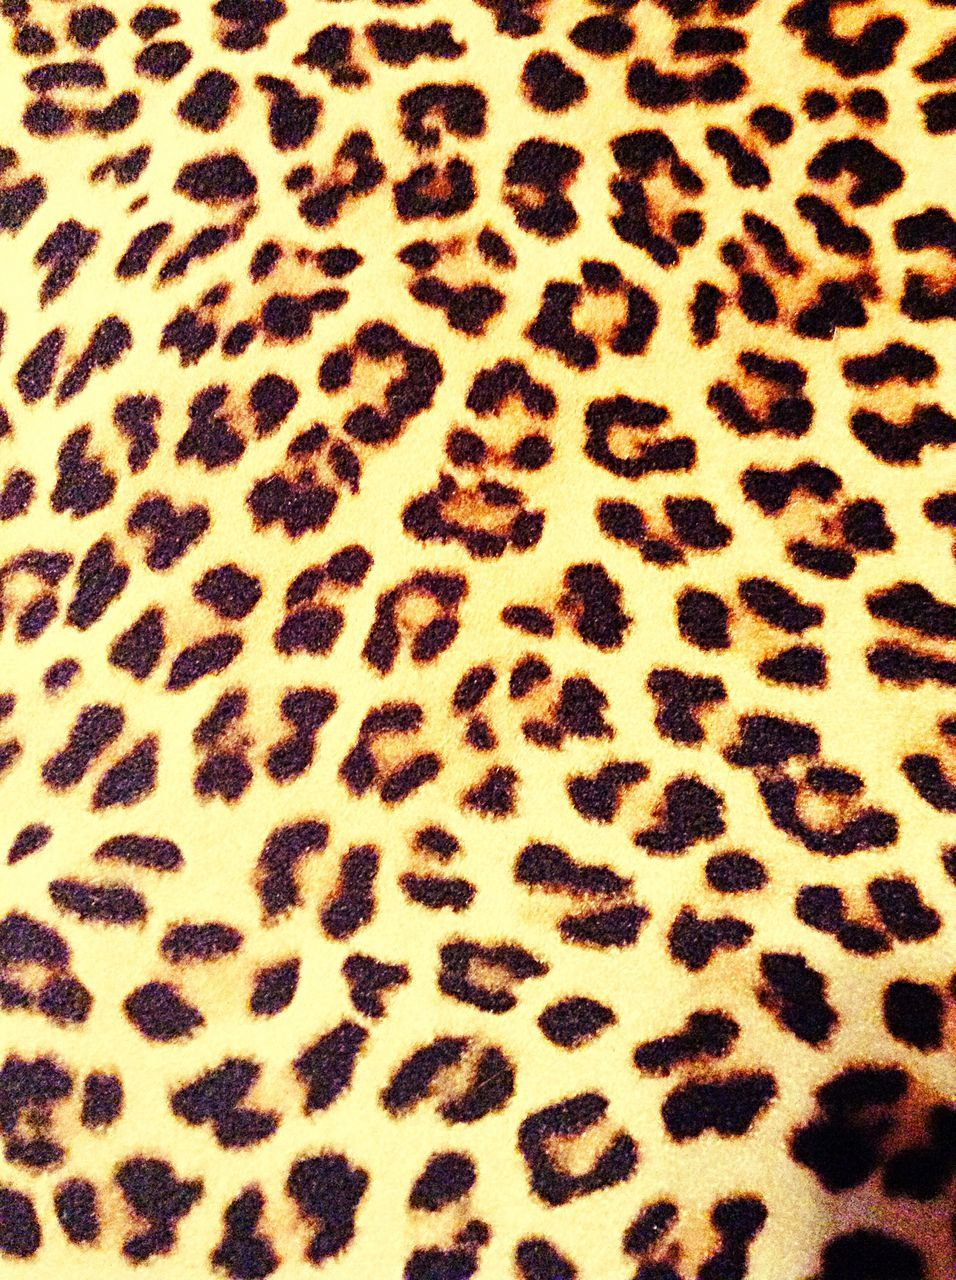 no people, spotted, pattern, backgrounds, full frame, animal themes, nature, close-up, mammal, indoors, day, leopard, food